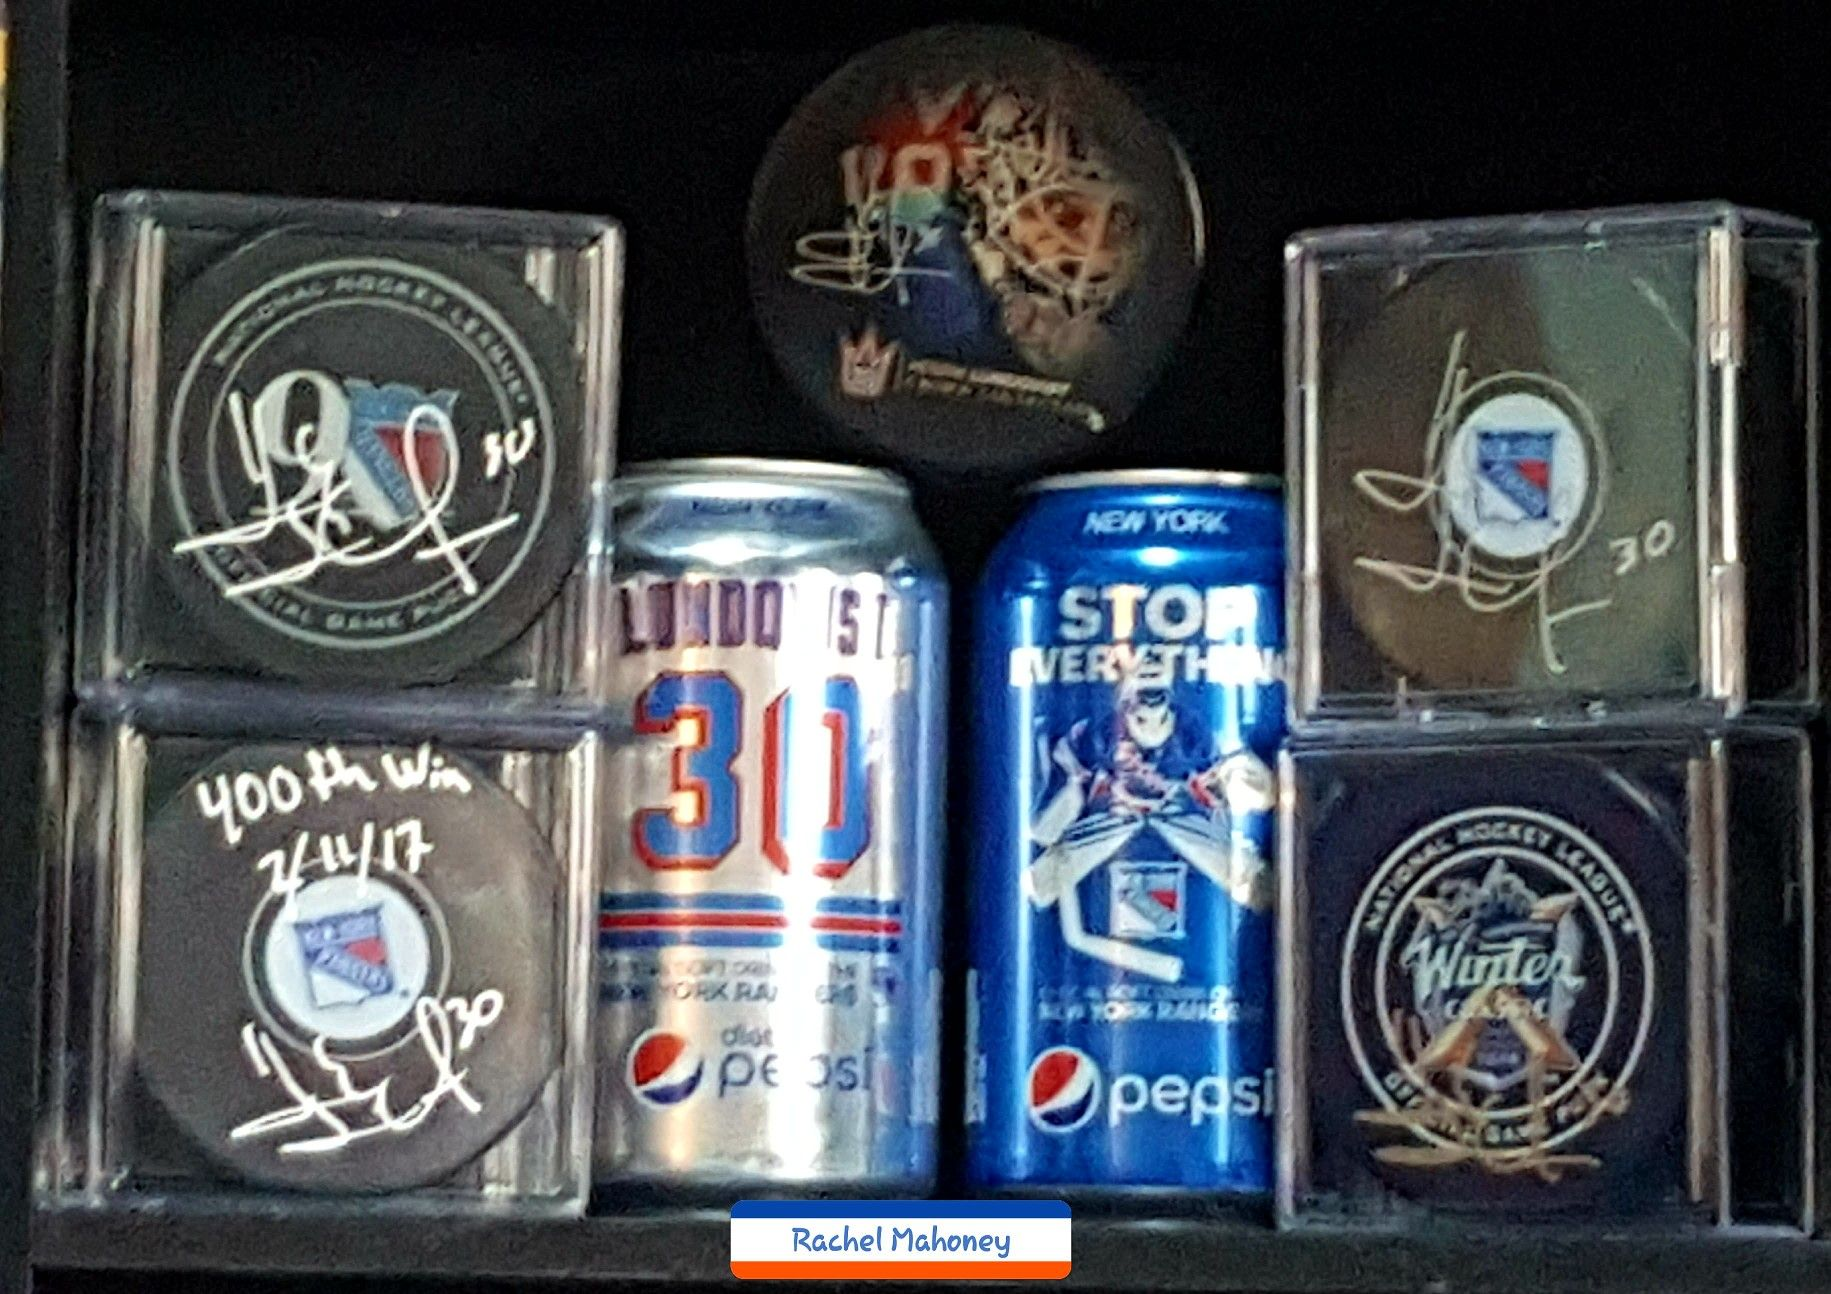 Pepsi Cans Pucks Lundqvist 4ever Nyr King Canning Pepsi Rc Cola